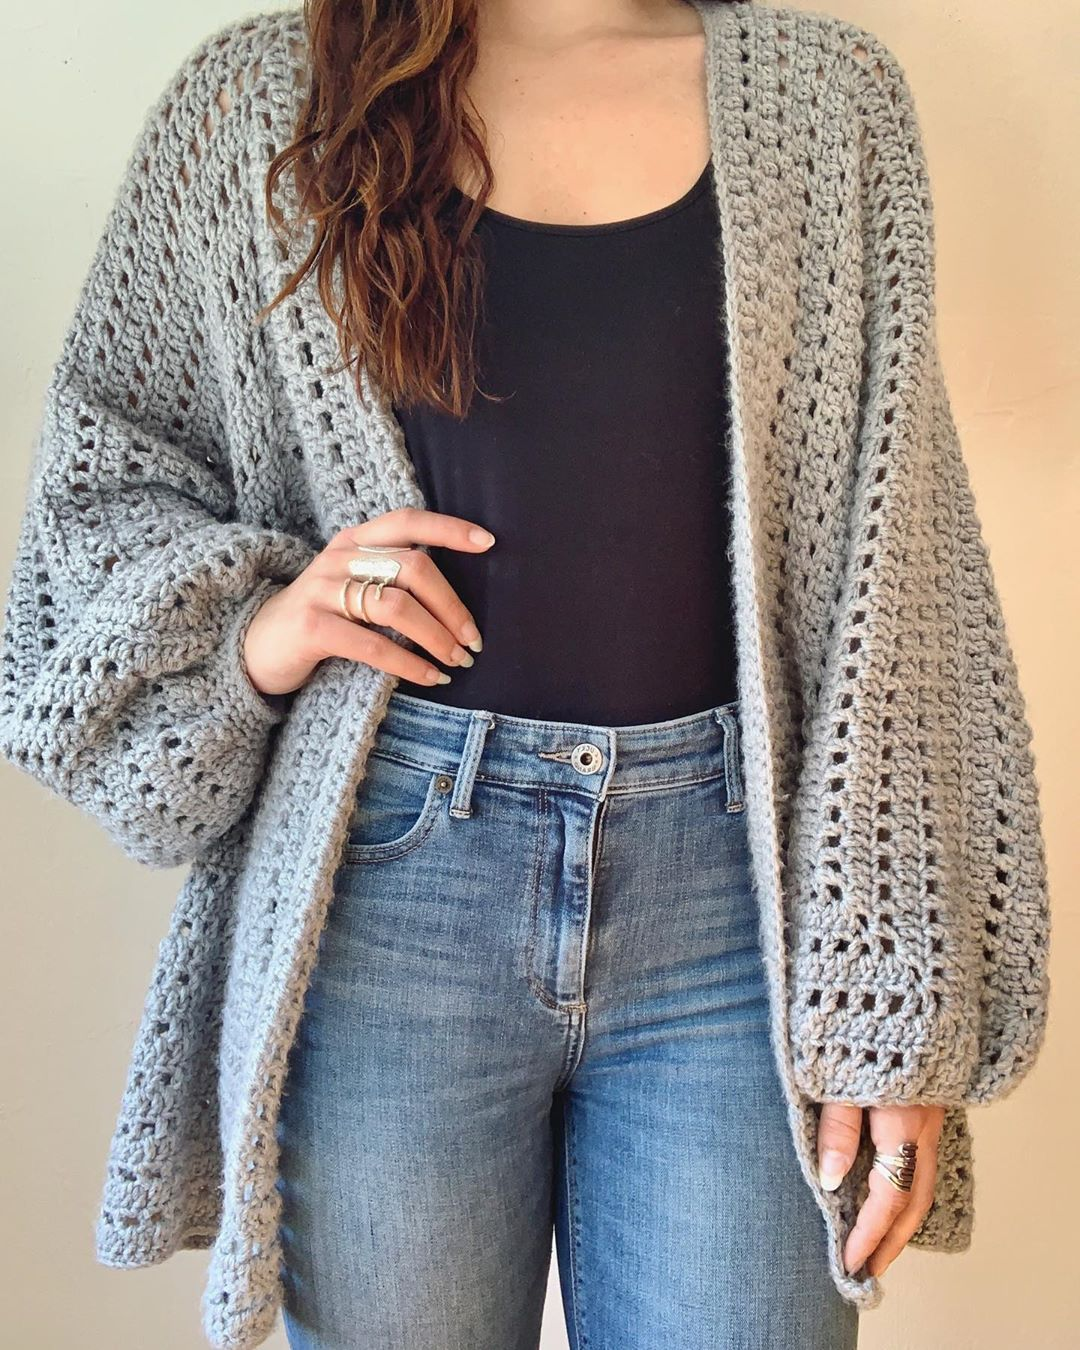 Making My Mans Take Me Out On A Day Date Loopsandthreads - Crochet Cardigan